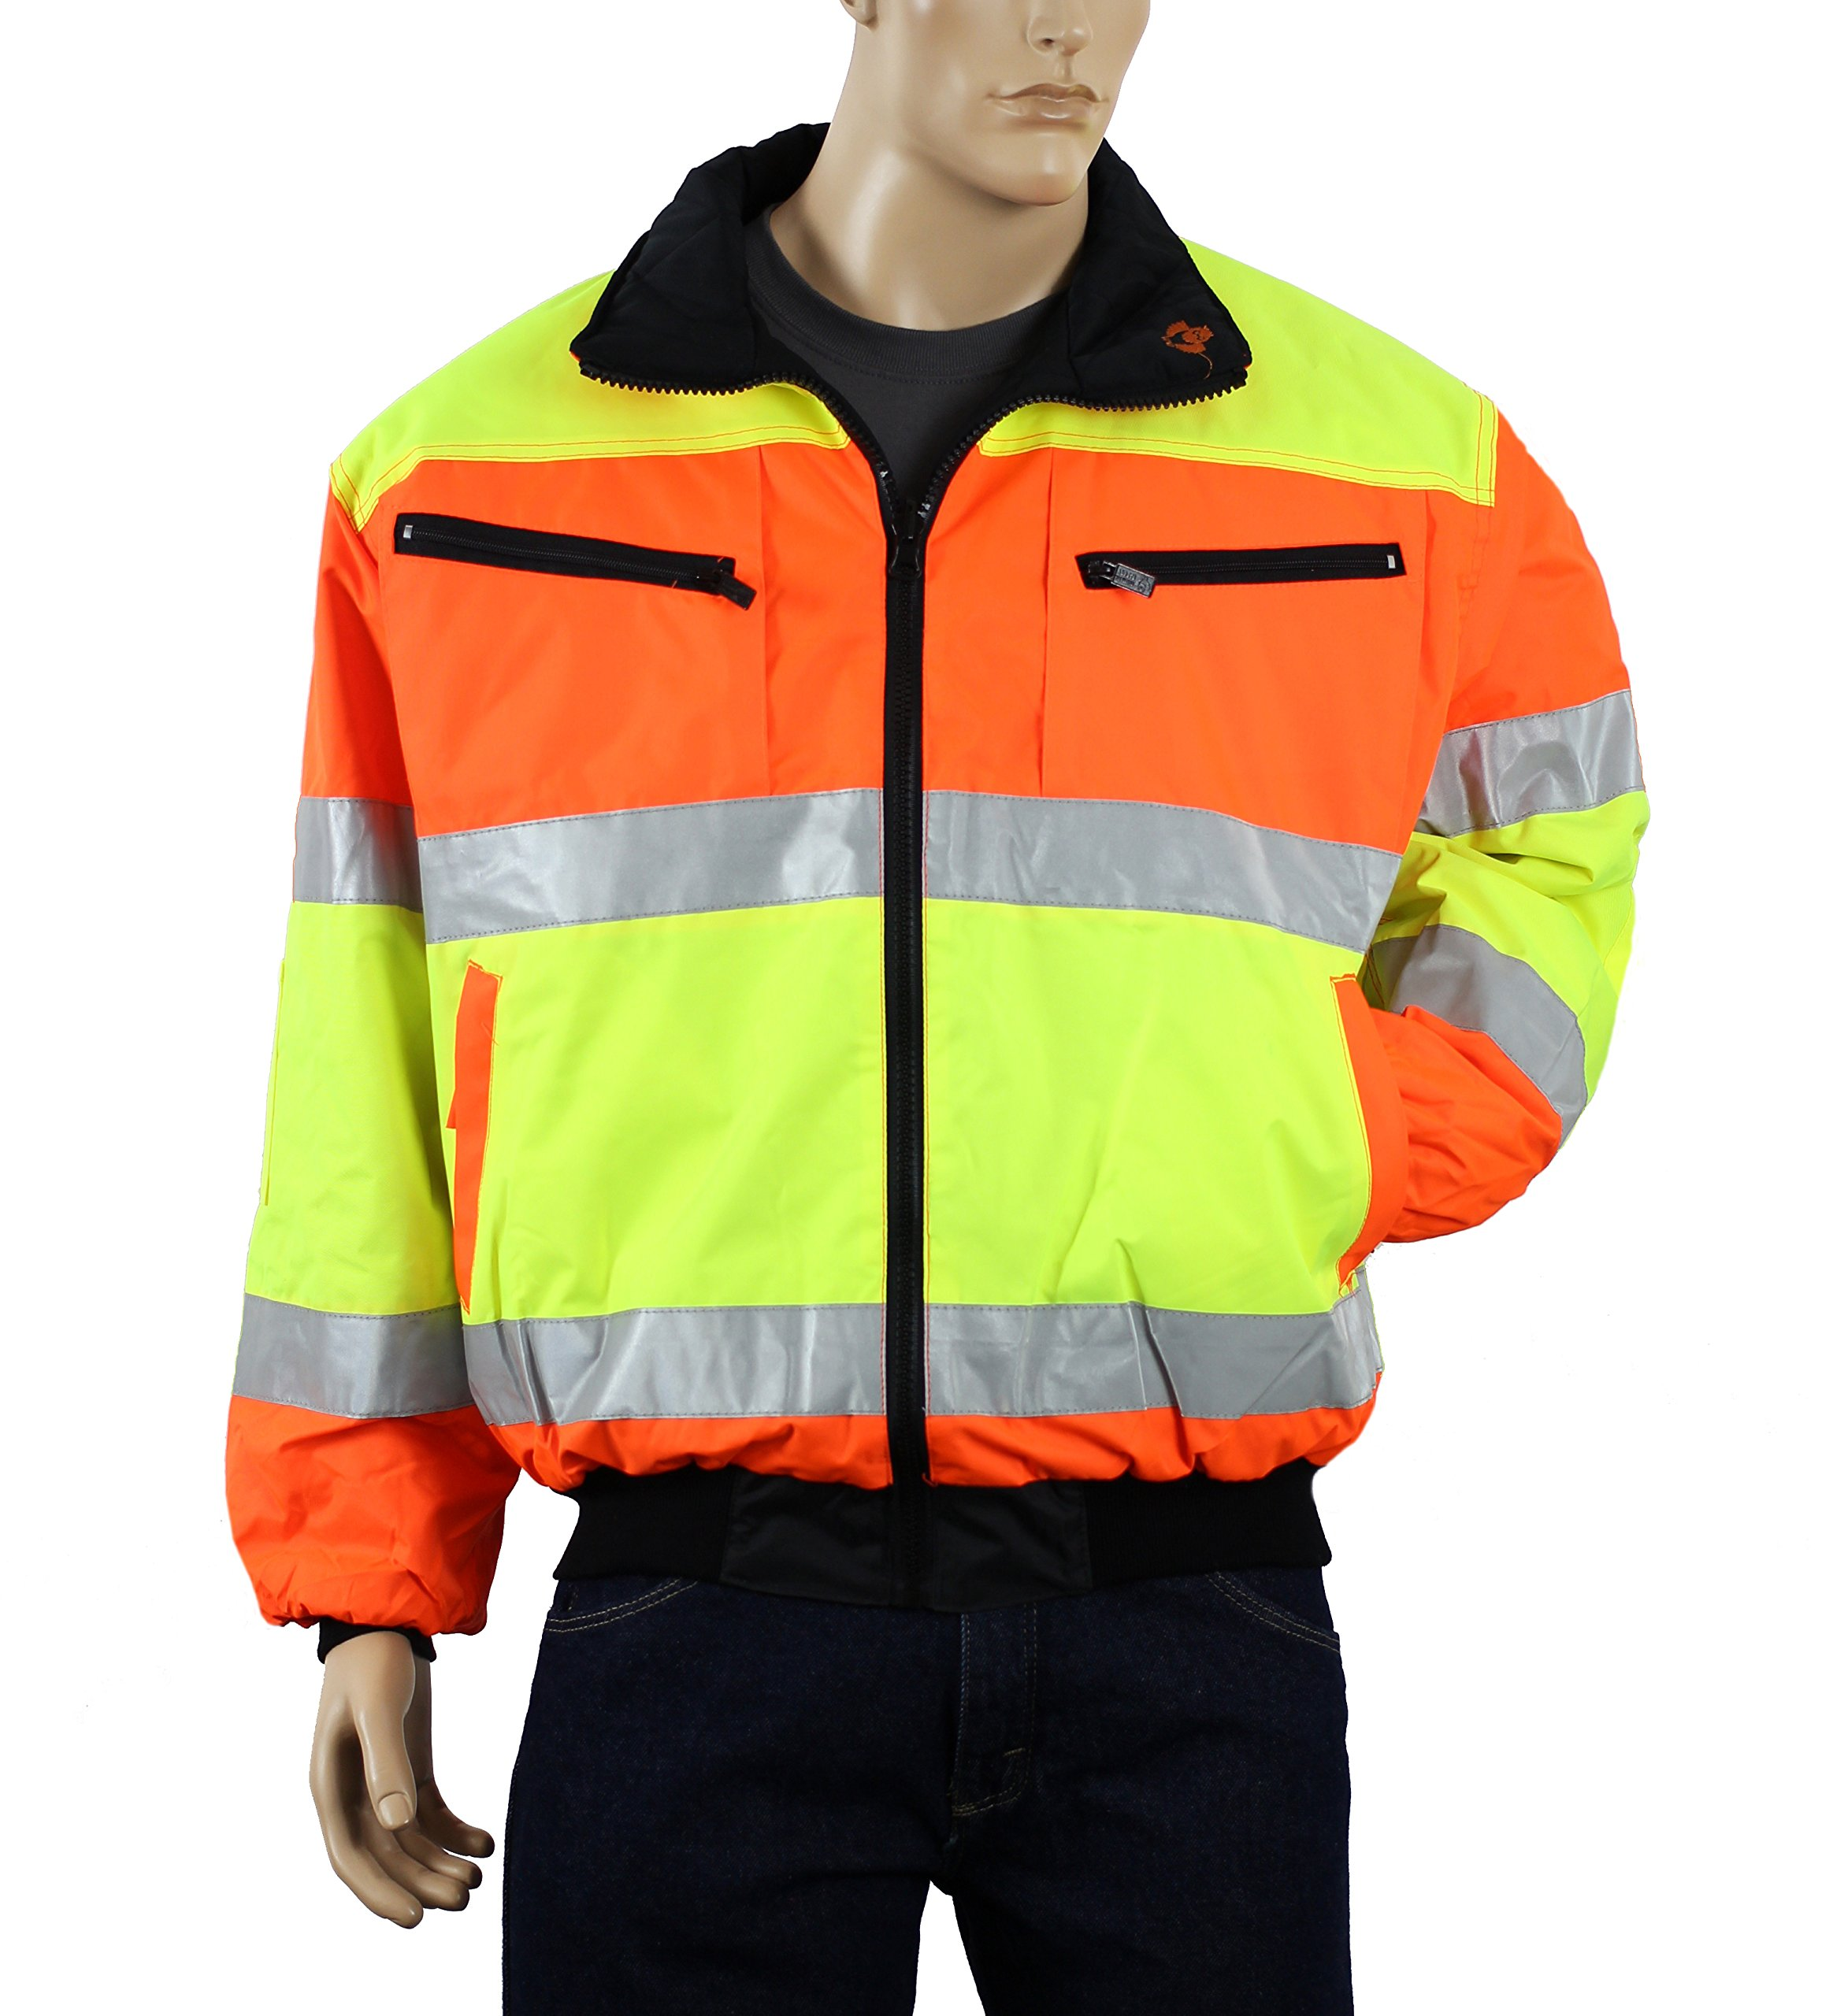 Safety Depot Cold Climate Safety Jacket ANSI Approved Class 3, Reversible, Water Resistant with Pockets (Large) by Safety Depot (Image #4)